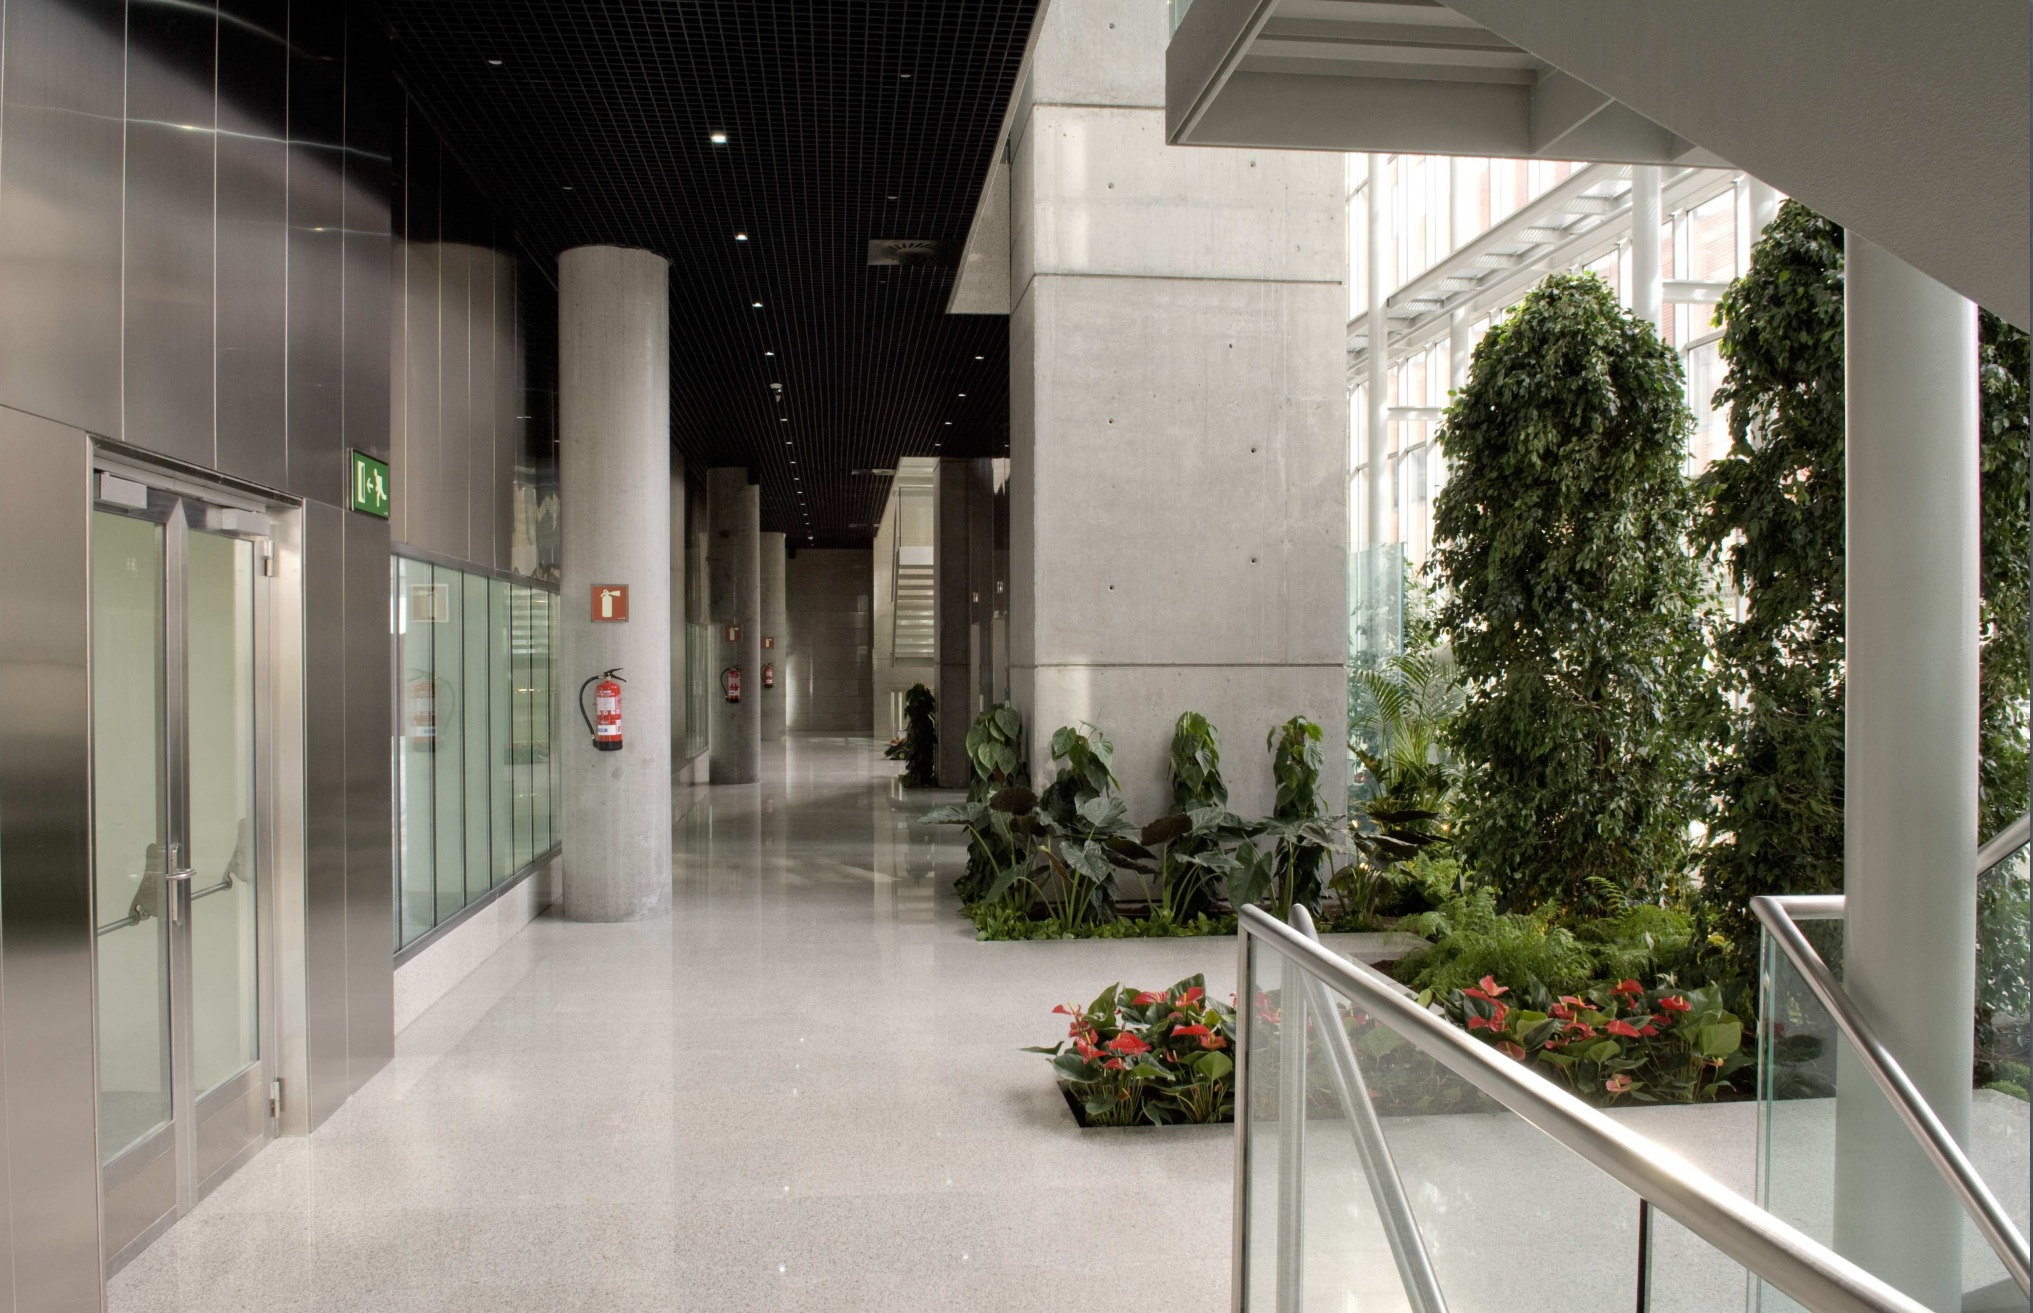 6-implantacion-oficinas-madrid